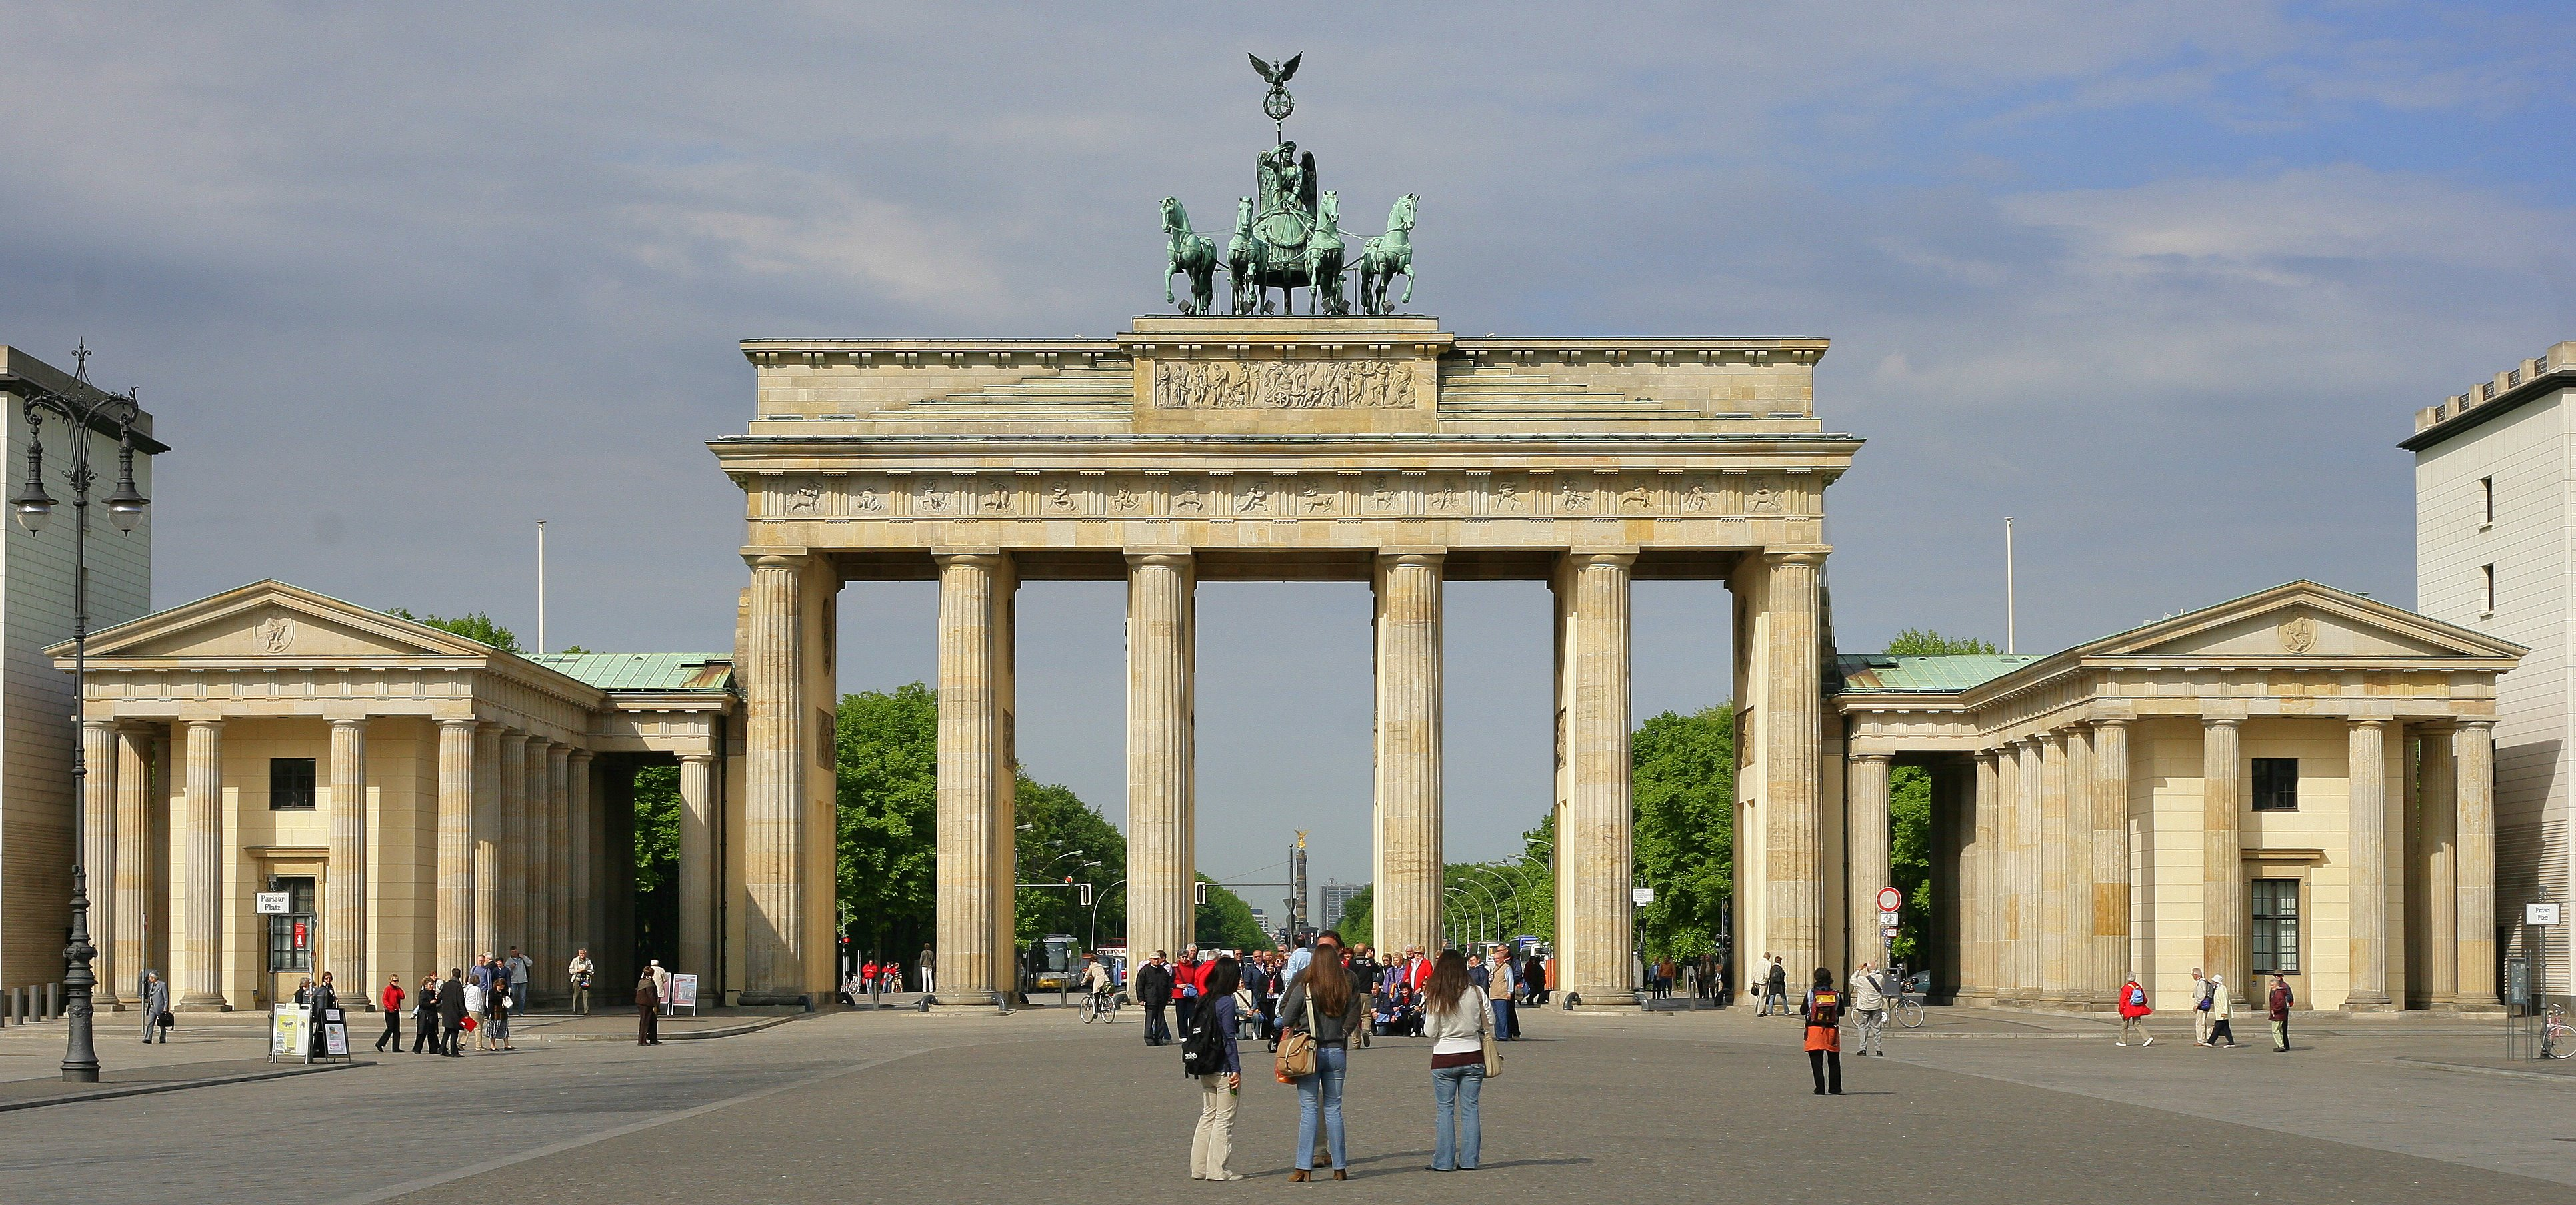 plik berlin brandenburg gate wikipedia wolna encyklopedia. Black Bedroom Furniture Sets. Home Design Ideas